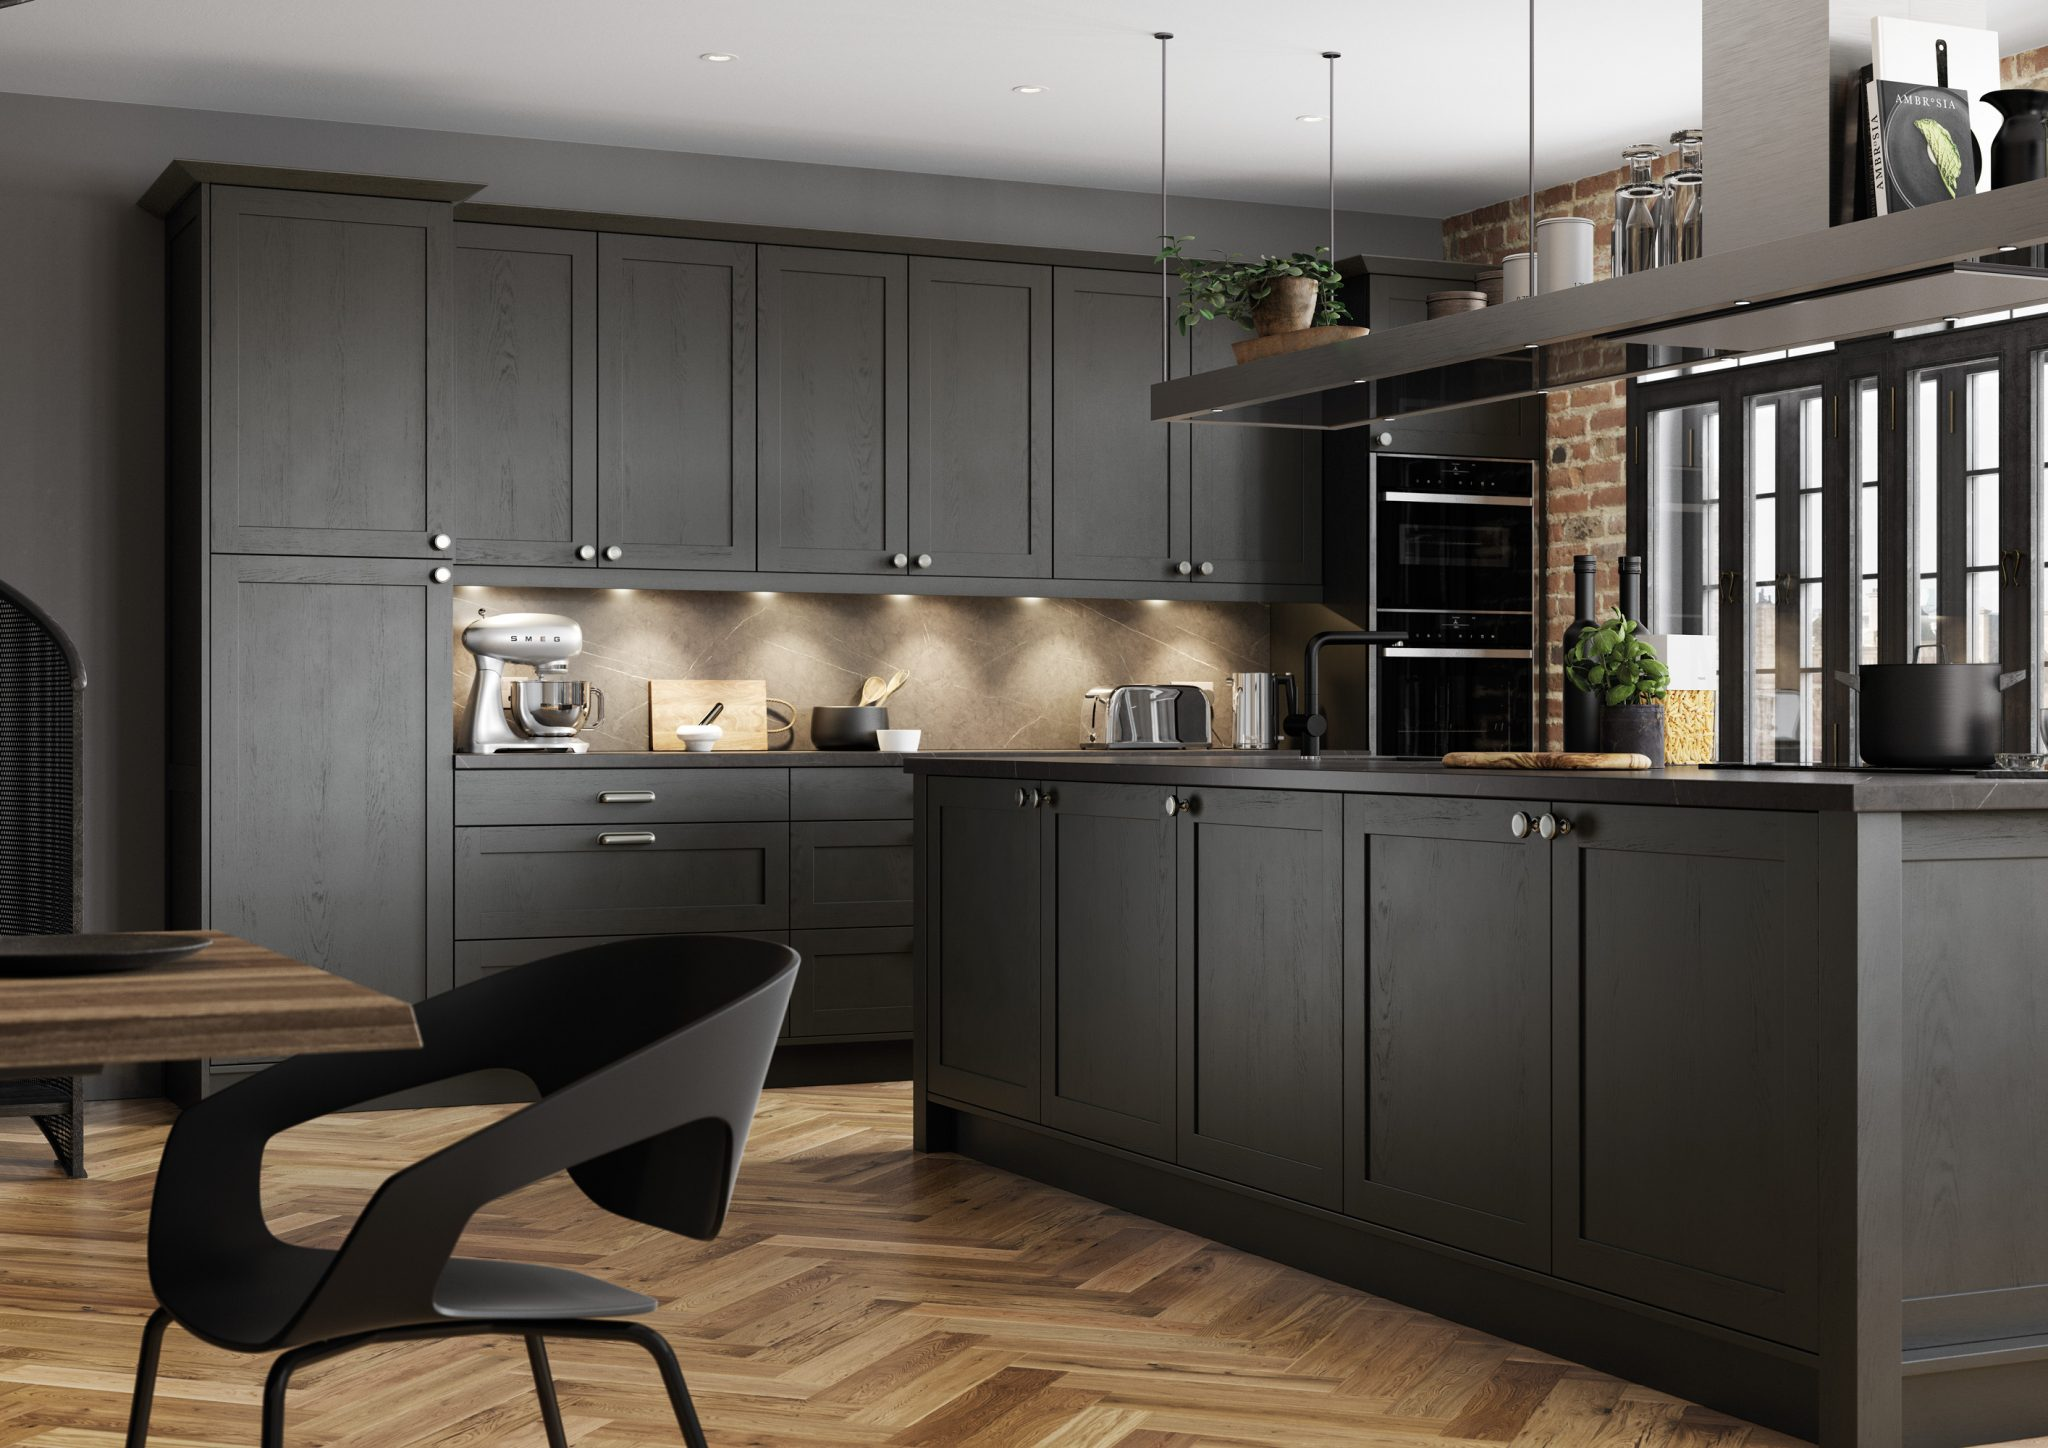 modern bold wooden kitchen in dark graphite grey with kitchen island